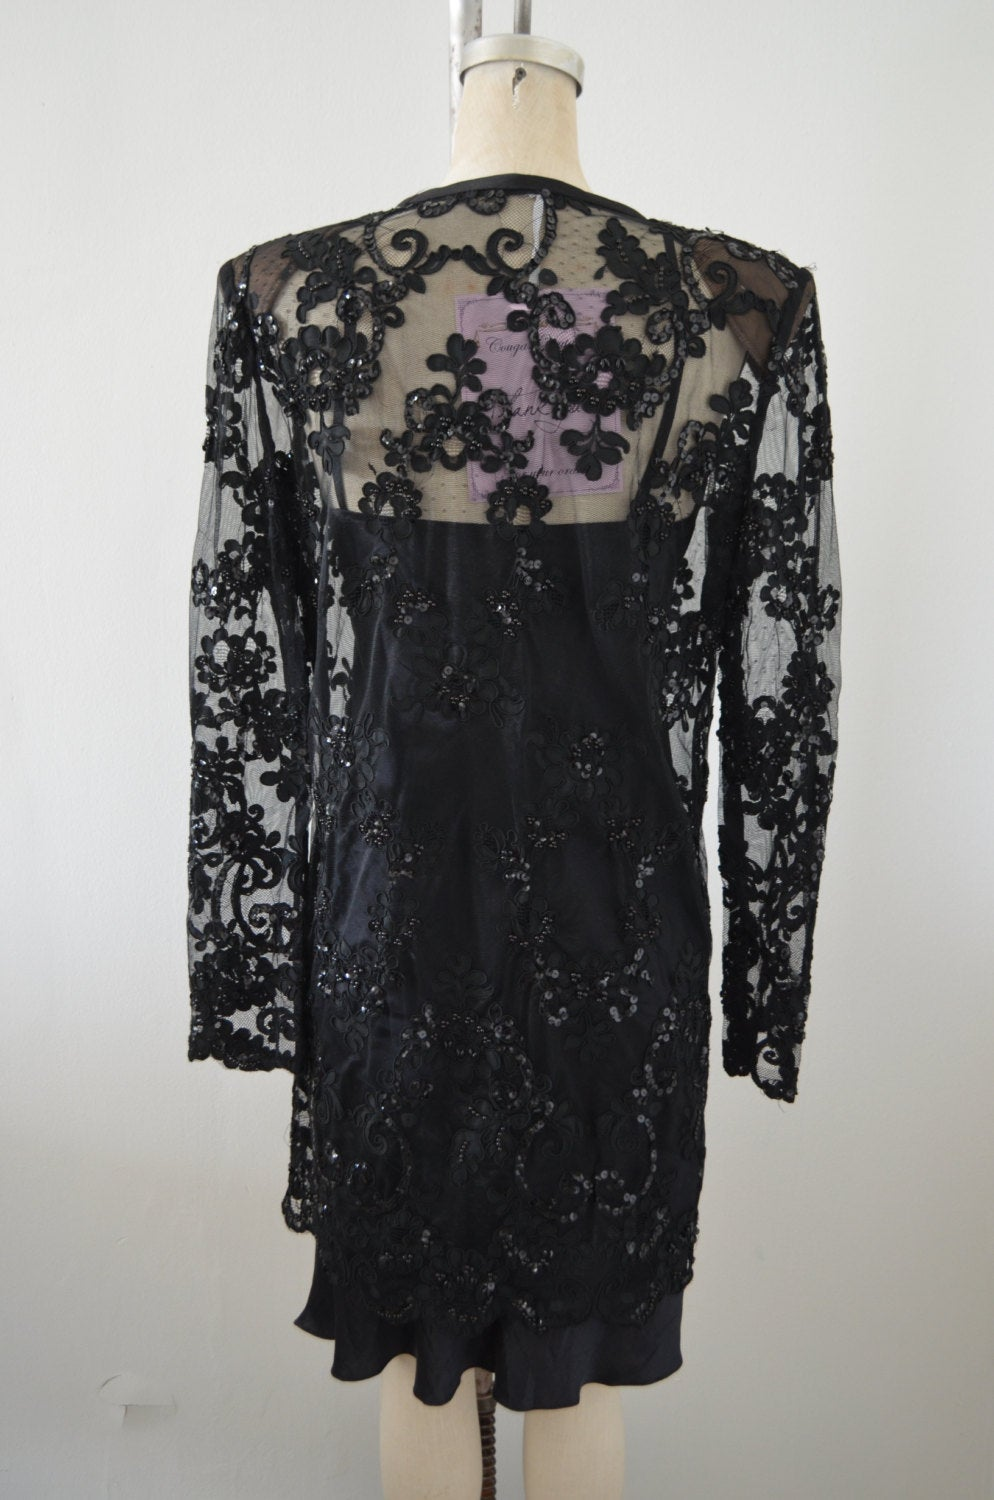 1970S Black Lace Sequined Sheer Blouse Top Dress Shirt Long Sleeve Tuxedo Bohemian Button Up